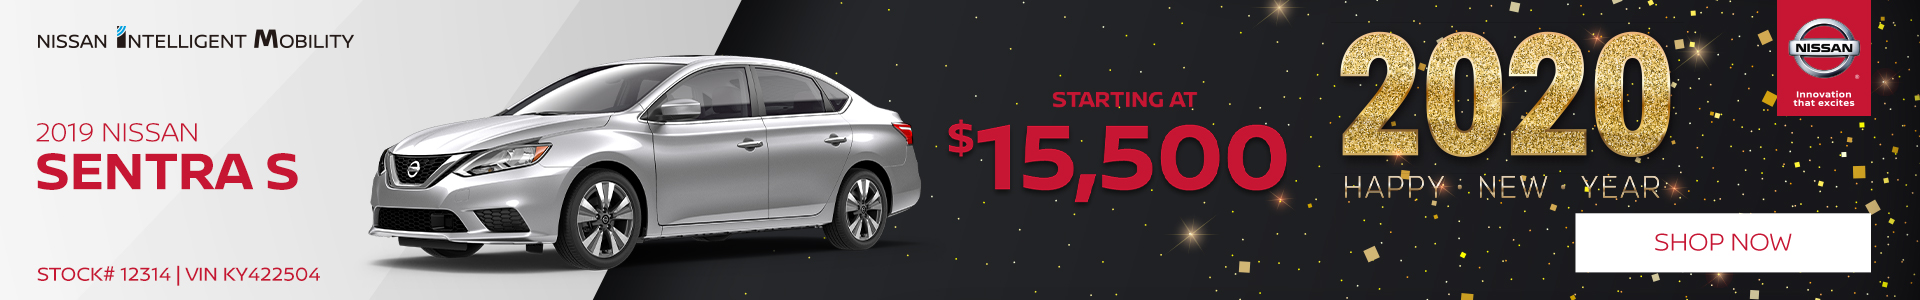 2019 Nissan Sentra S Purchase Offer